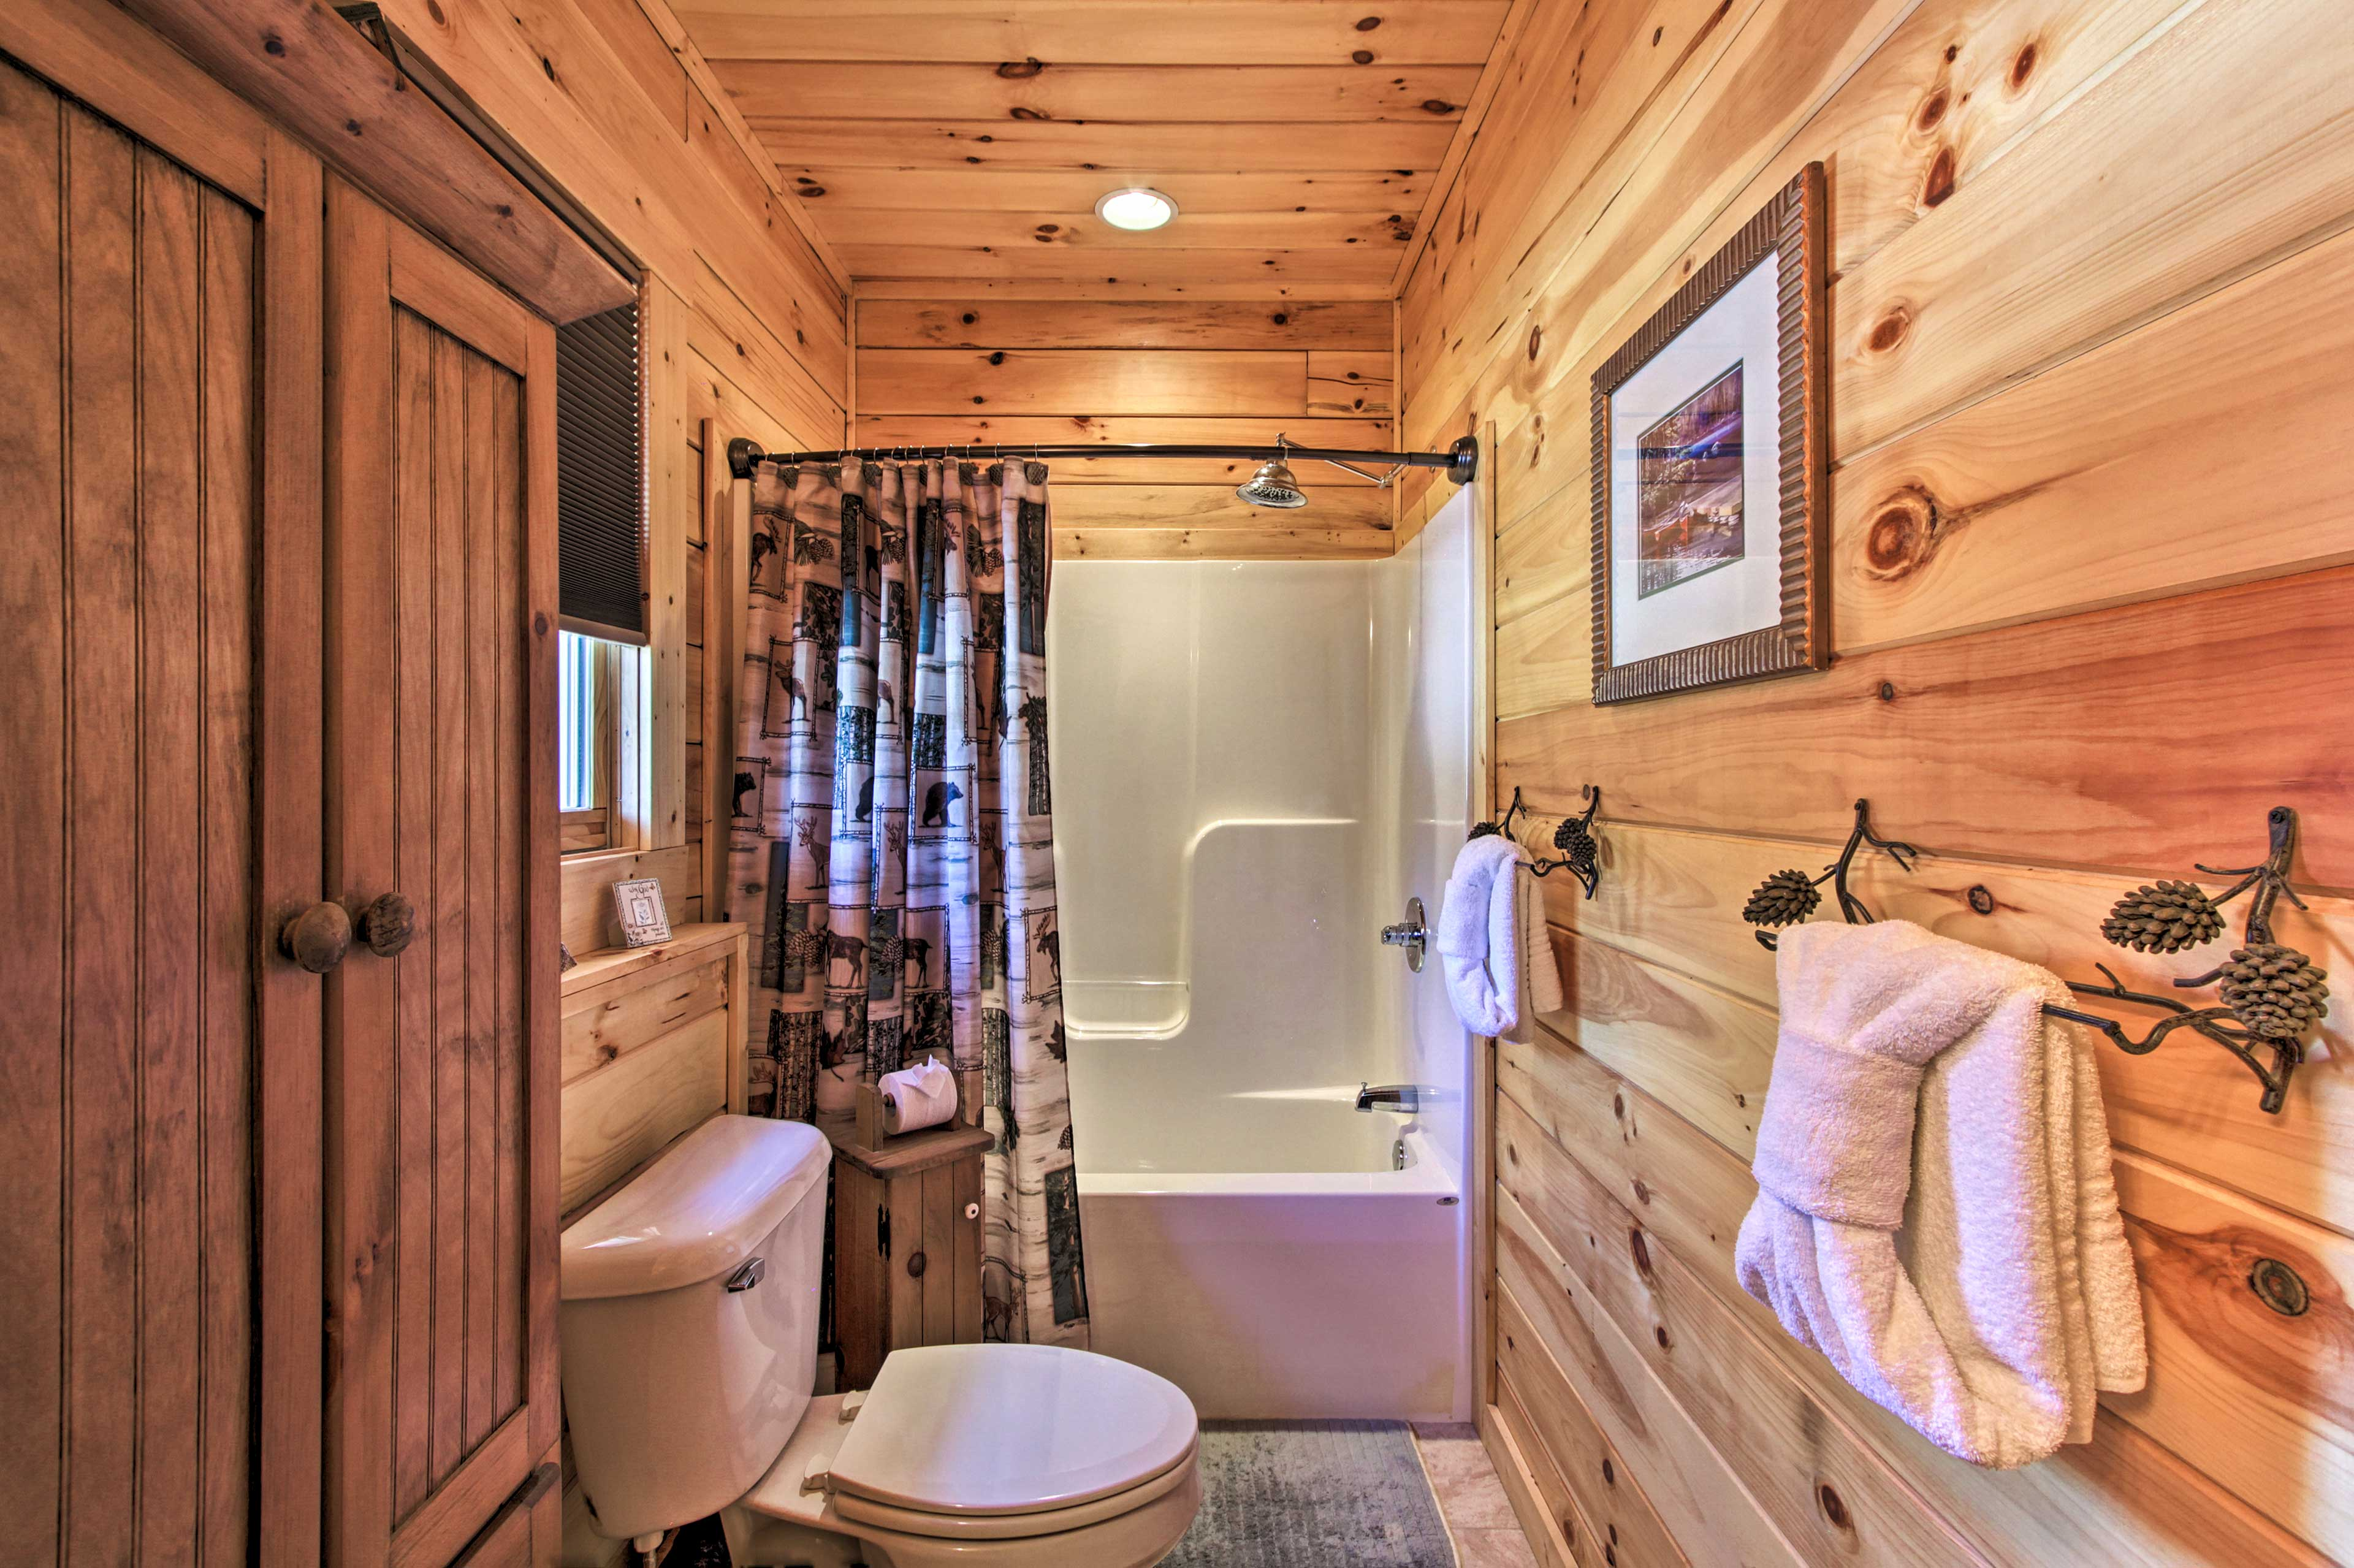 The home features 2 full bathrooms for your convenience.